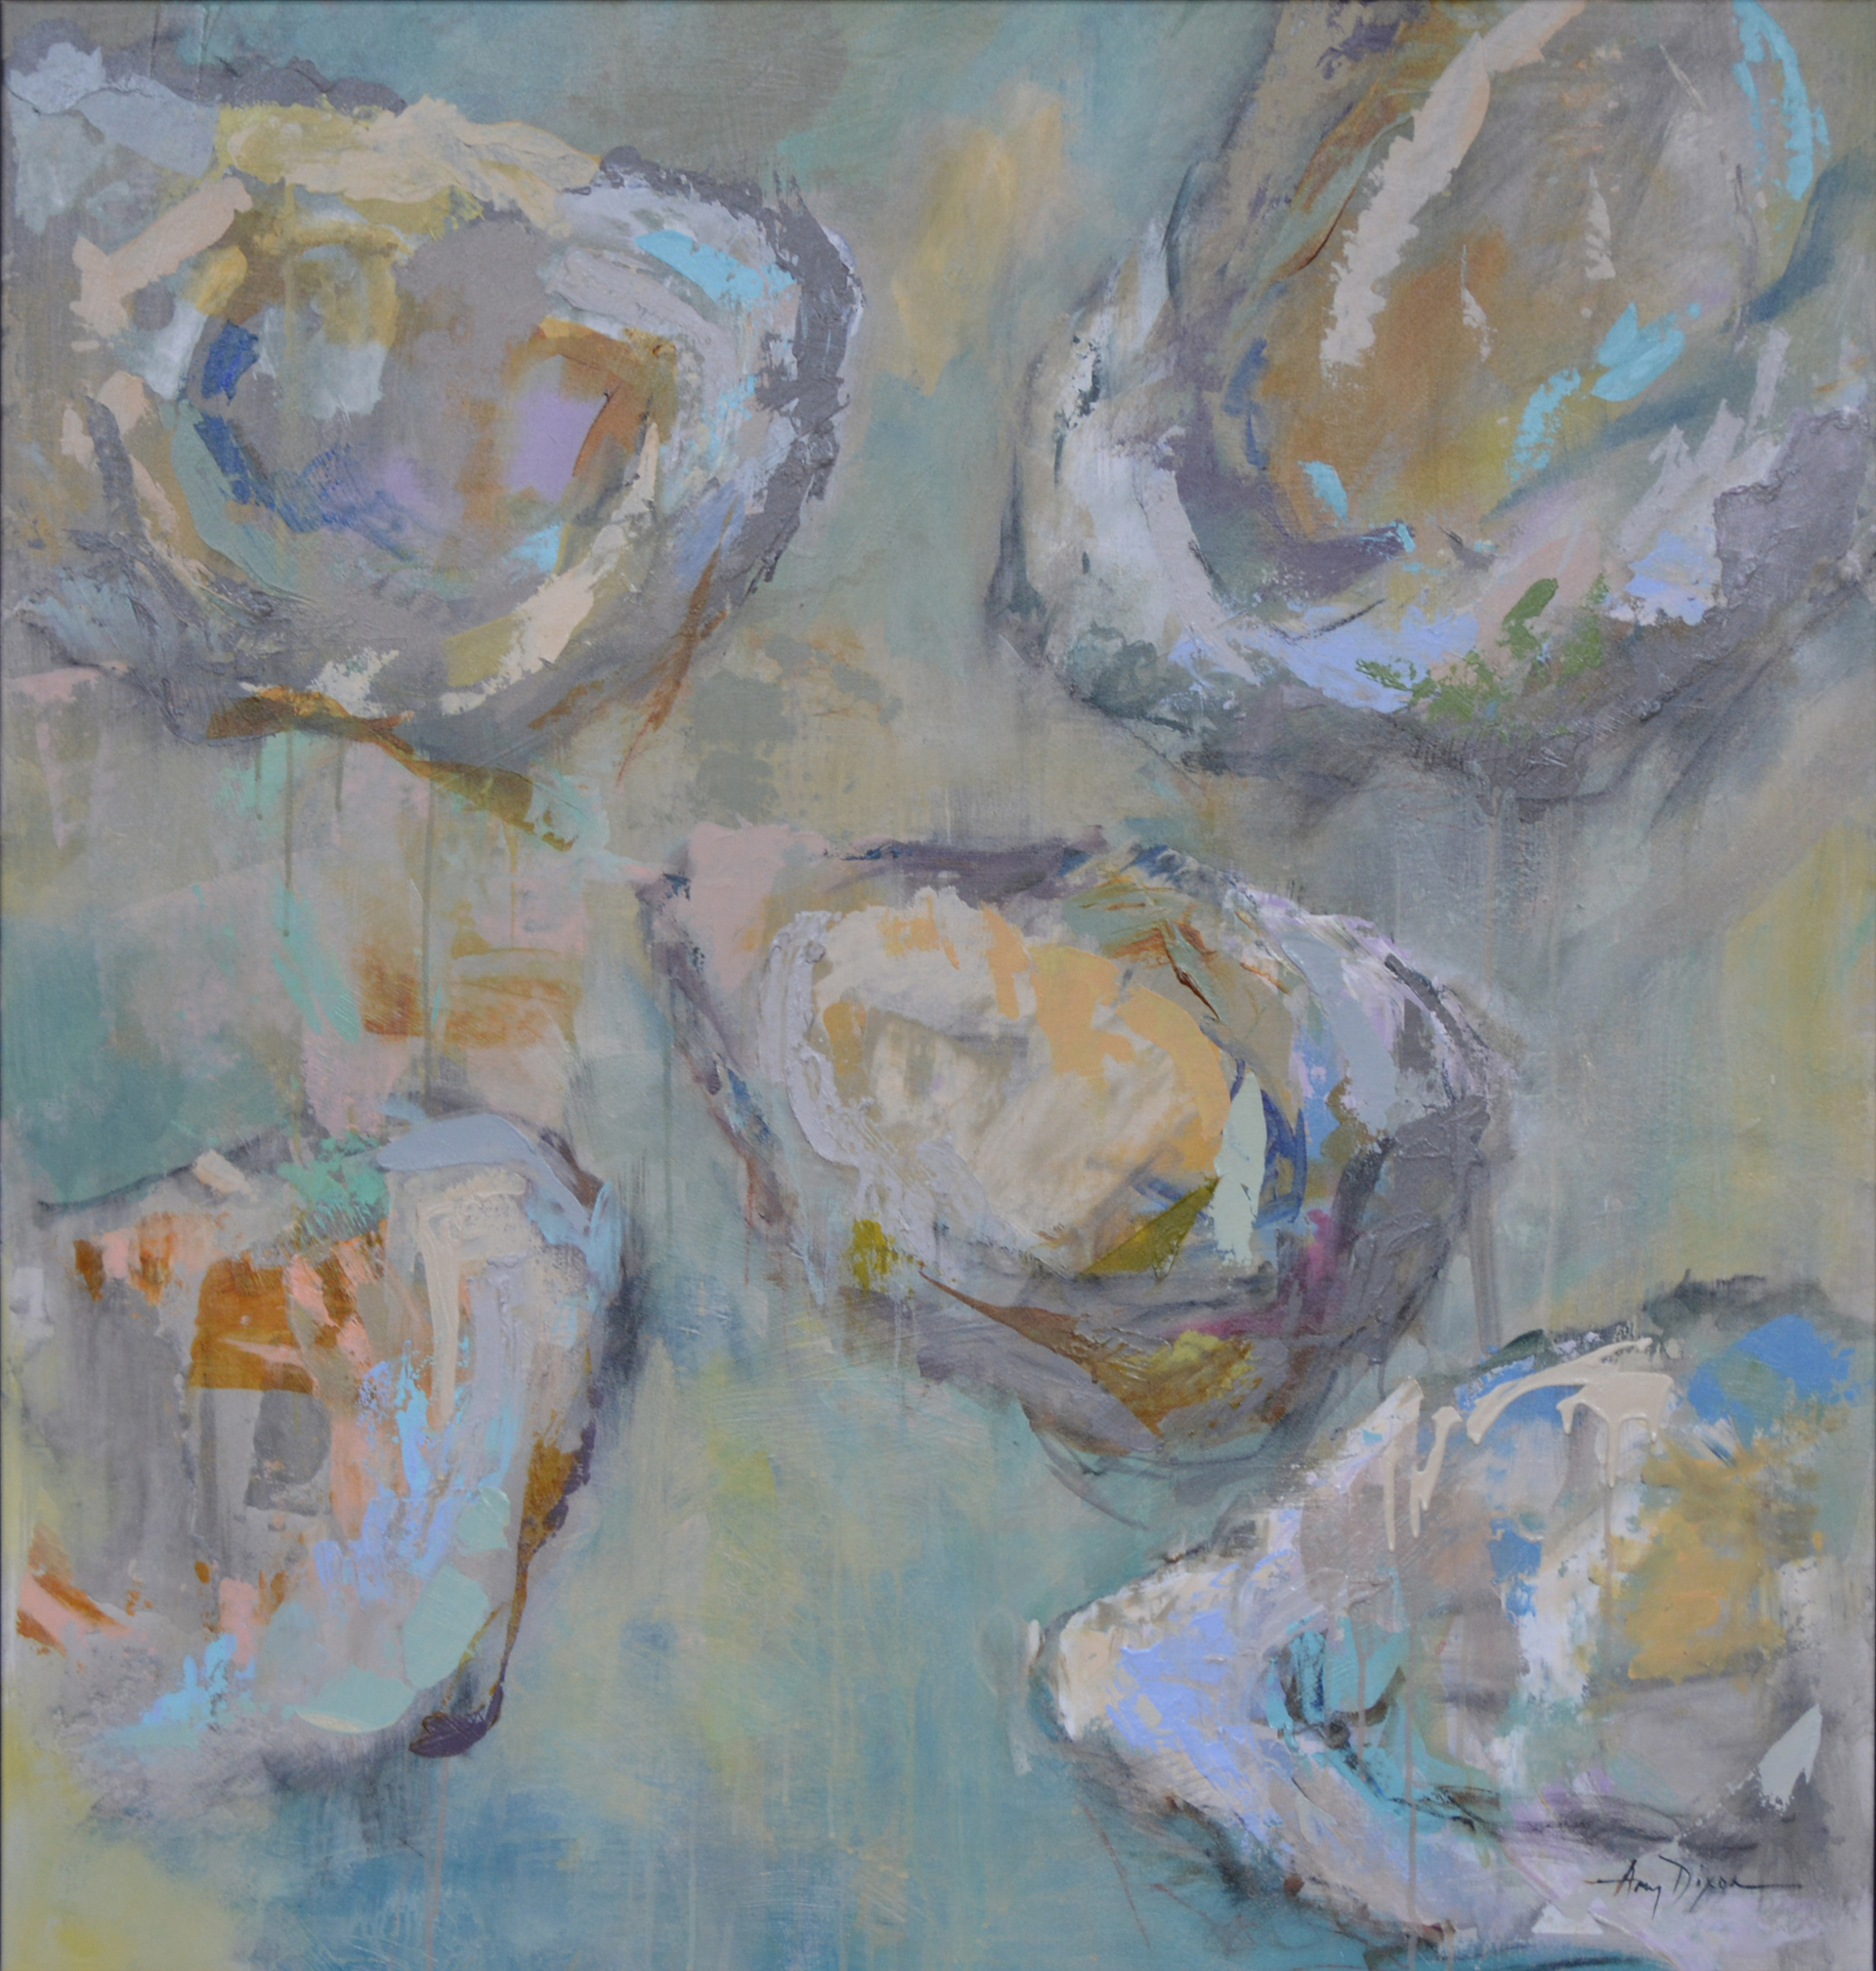 Oyster Pearl by Amy Dixon